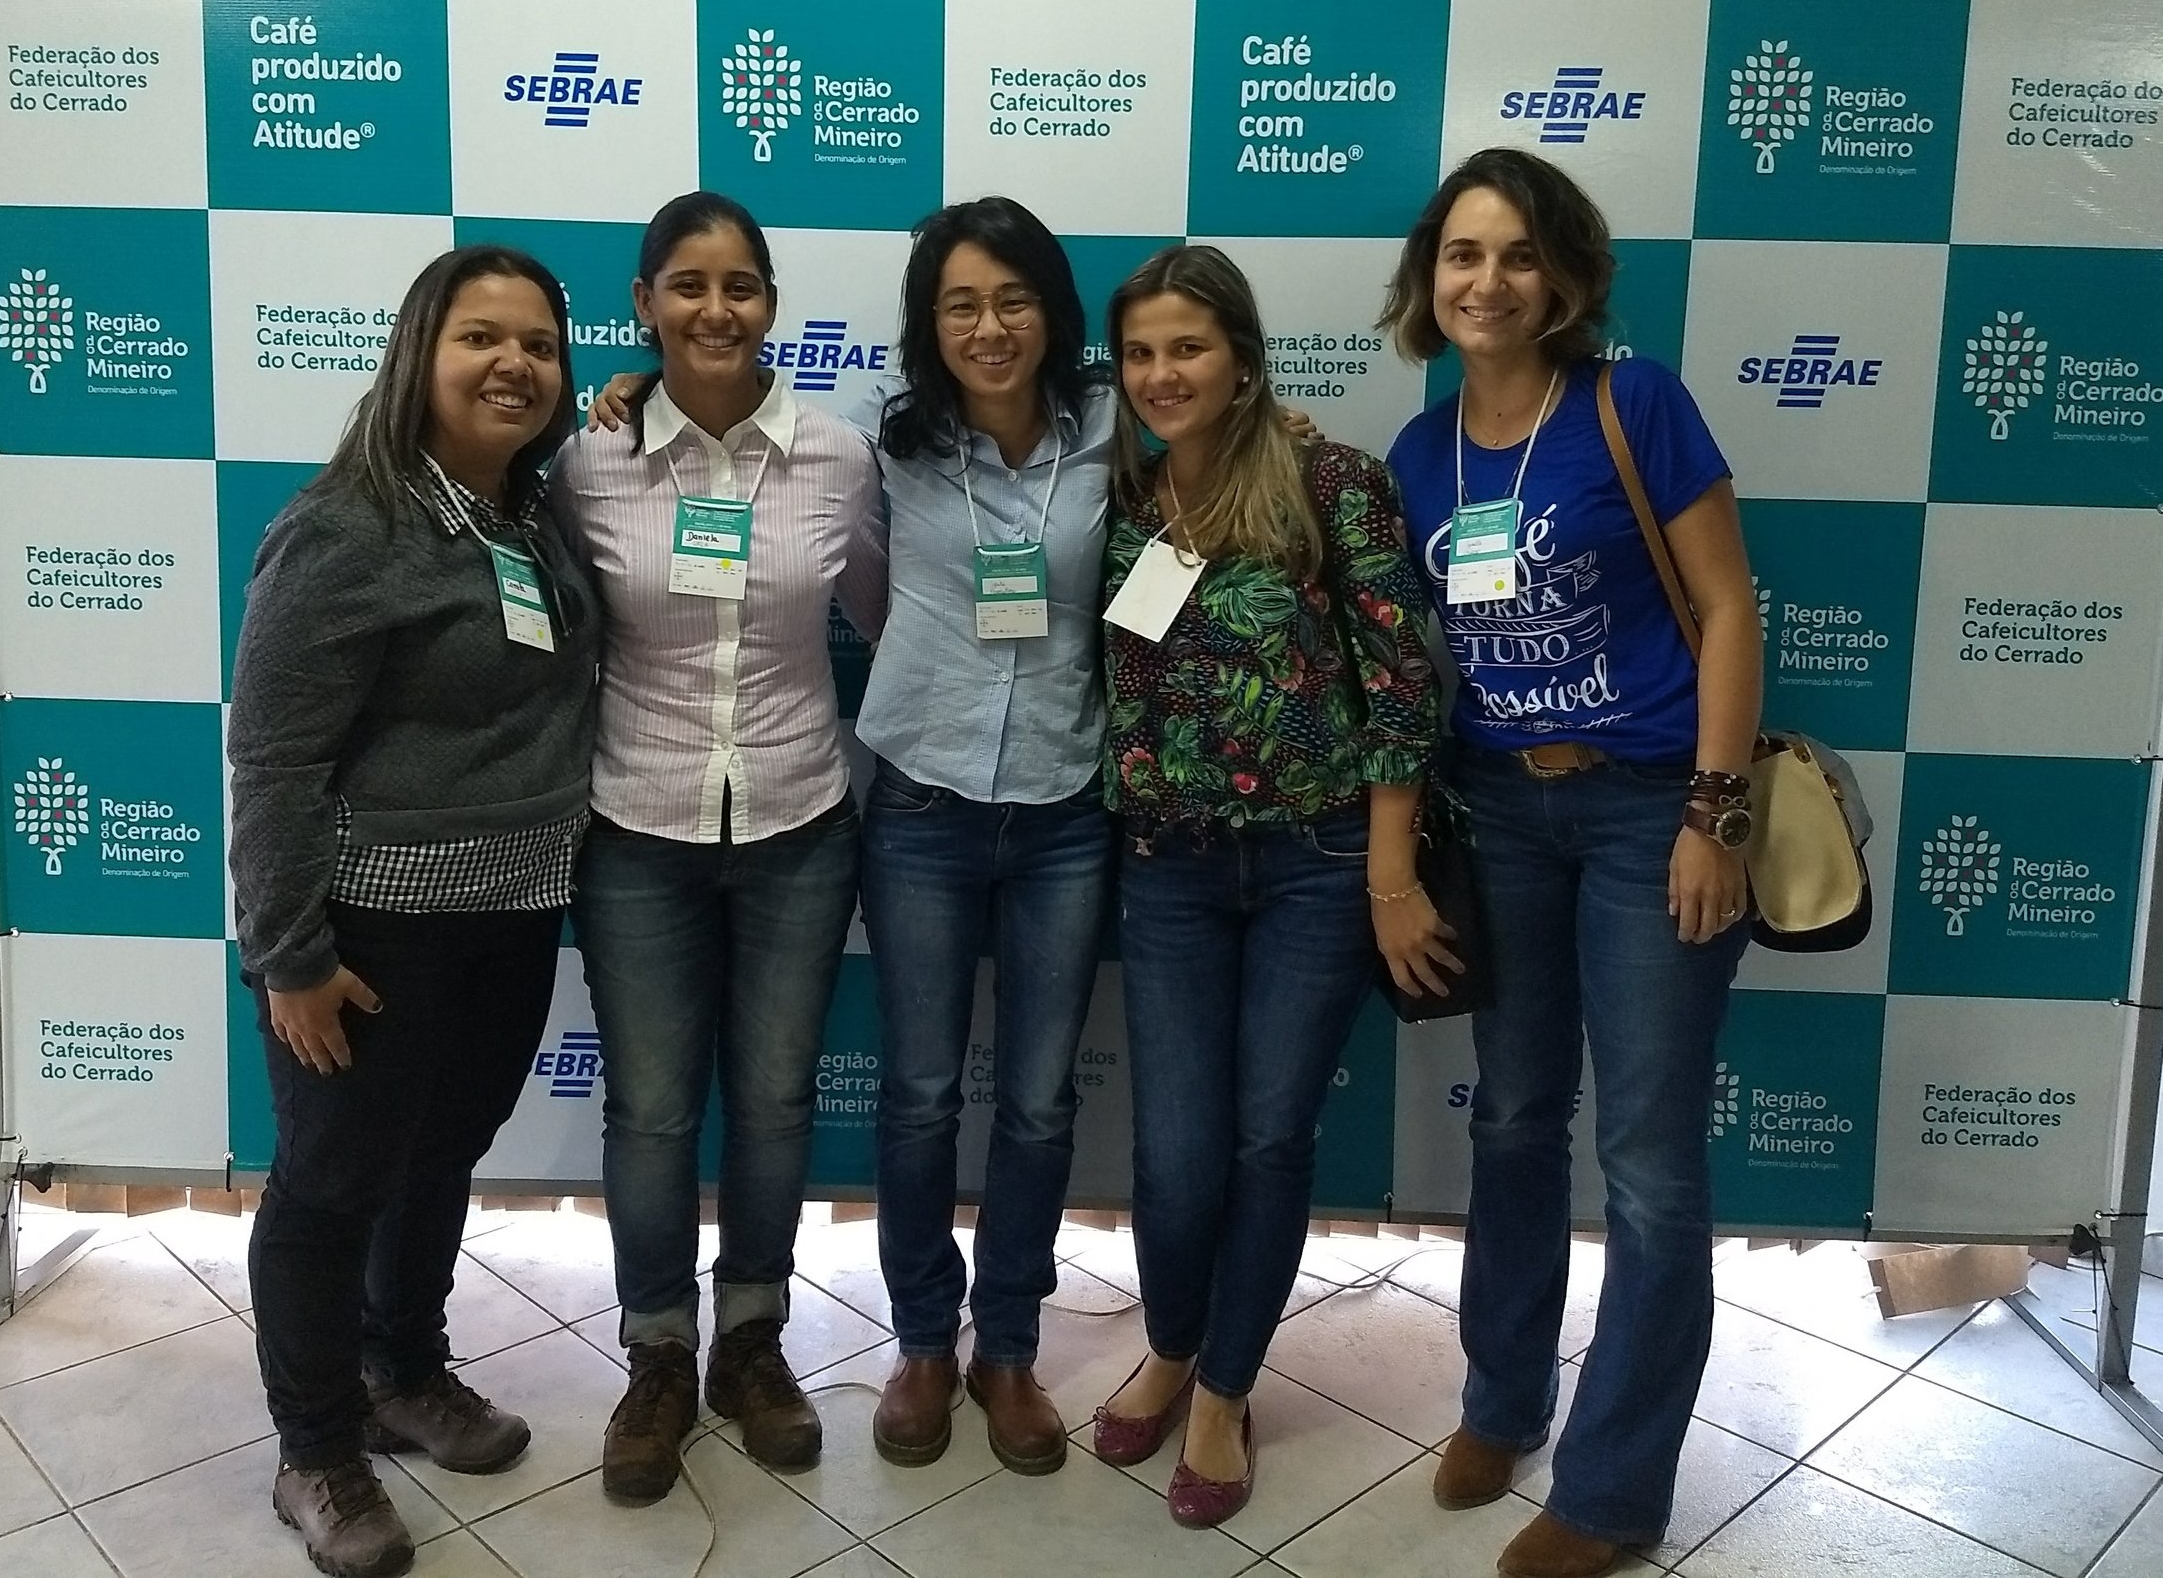 The coffee post-harvest team or powerful Borem coffee girls: Camilinha Dias, Dani Teixeira, Gabi Silva and Giselle Figueiredo